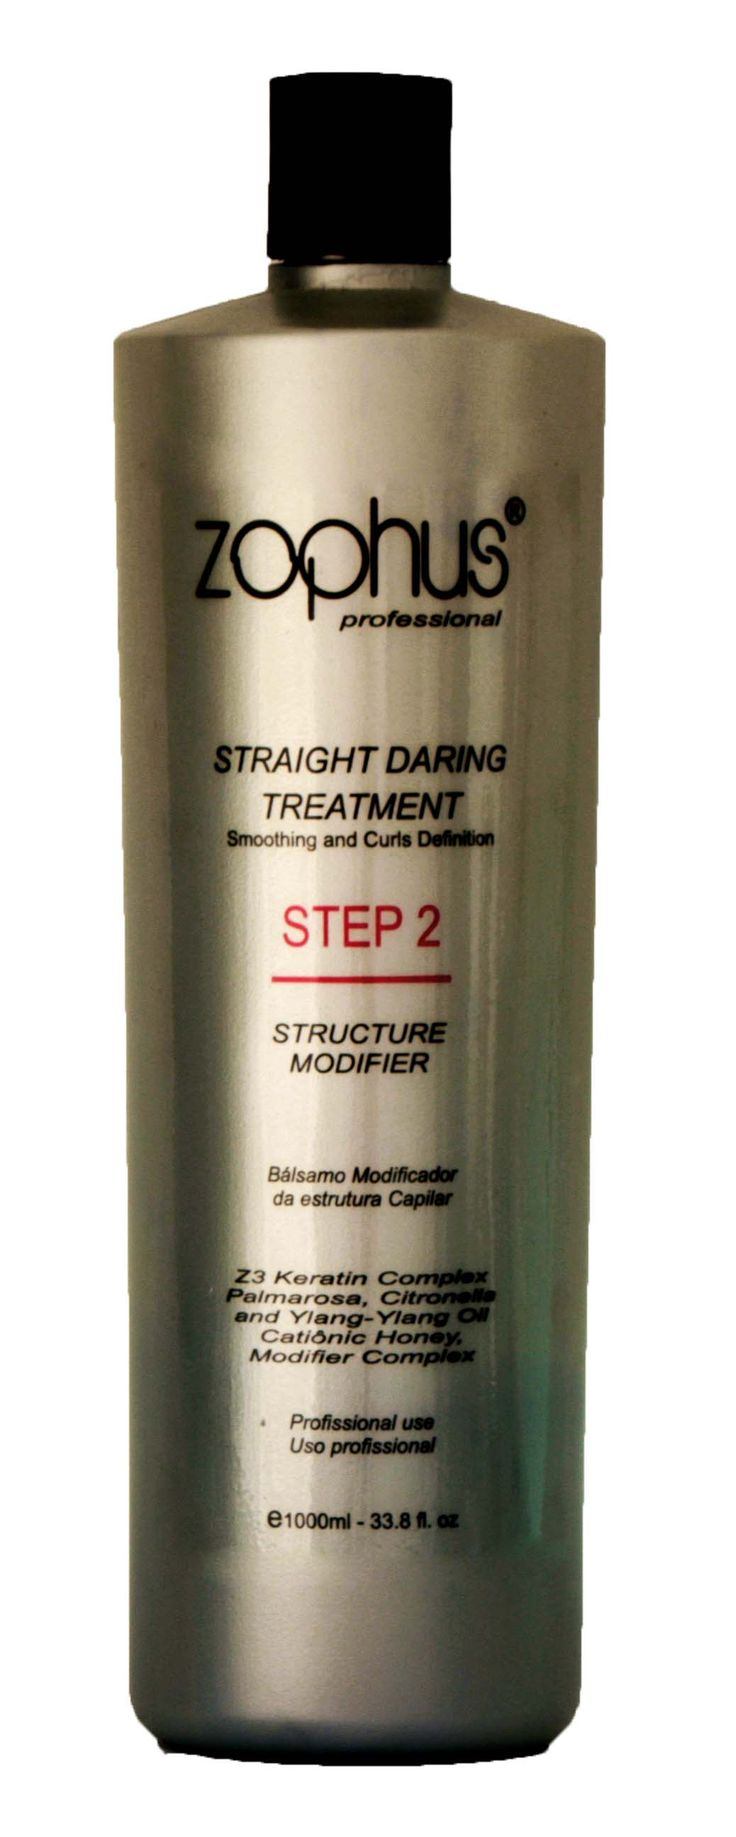 Structure Modifier. (Professional Use) Transforms the rebels and unruly hair into a new natural flat form or reset the curls eliminating frizz permanently,thanks to safe and effective action of the Cocamide Mea, Z3 Keratin , Palmarosa,Citronella and Ylang-Ylang.